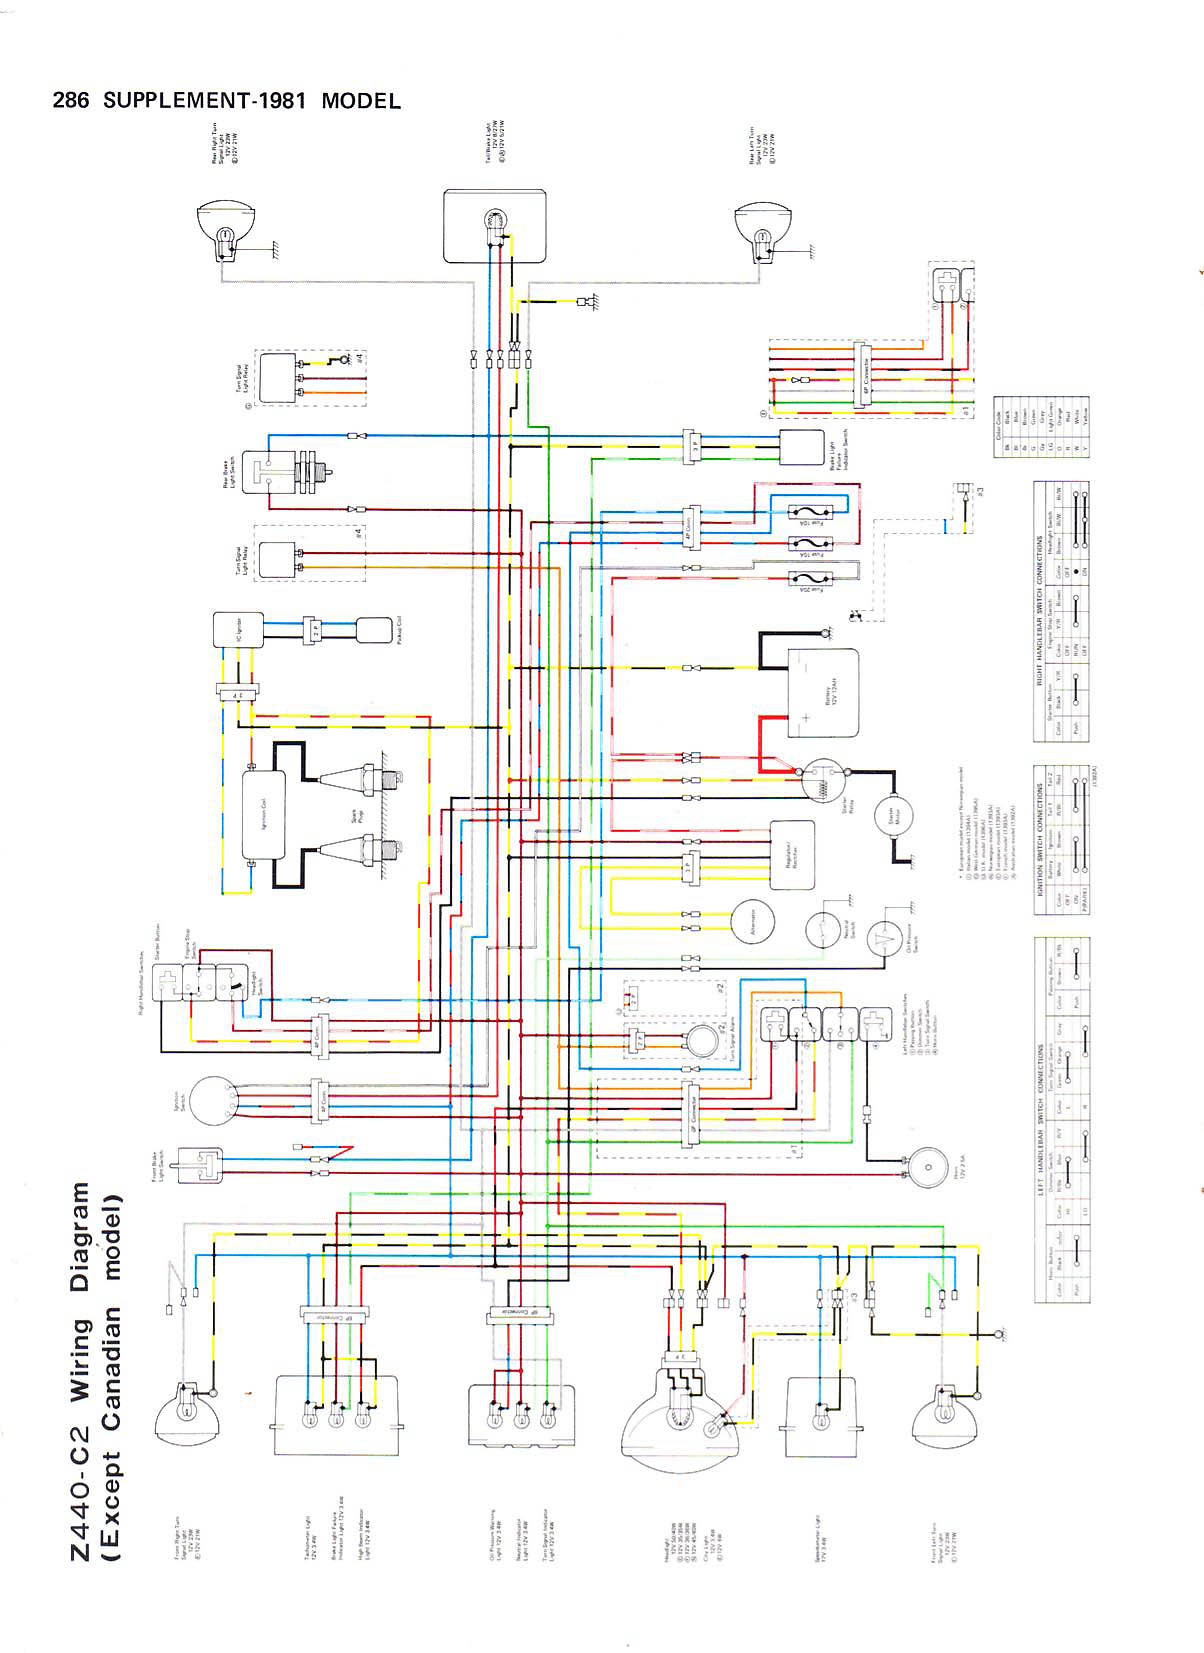 wiring diagram isx 525 with Ktm 400 Wiring Diagram on Manual 1998 3406e Cat Oil Pressure Switch Wire Diagram together with Codigos De Falla Celect Plus M11n14 moreover Polaris Five Wire Ignition Switch Wiring Diagram in addition Ktm 400 Wiring Diagram together with Codigos De Falla Celect Plus M11n14.